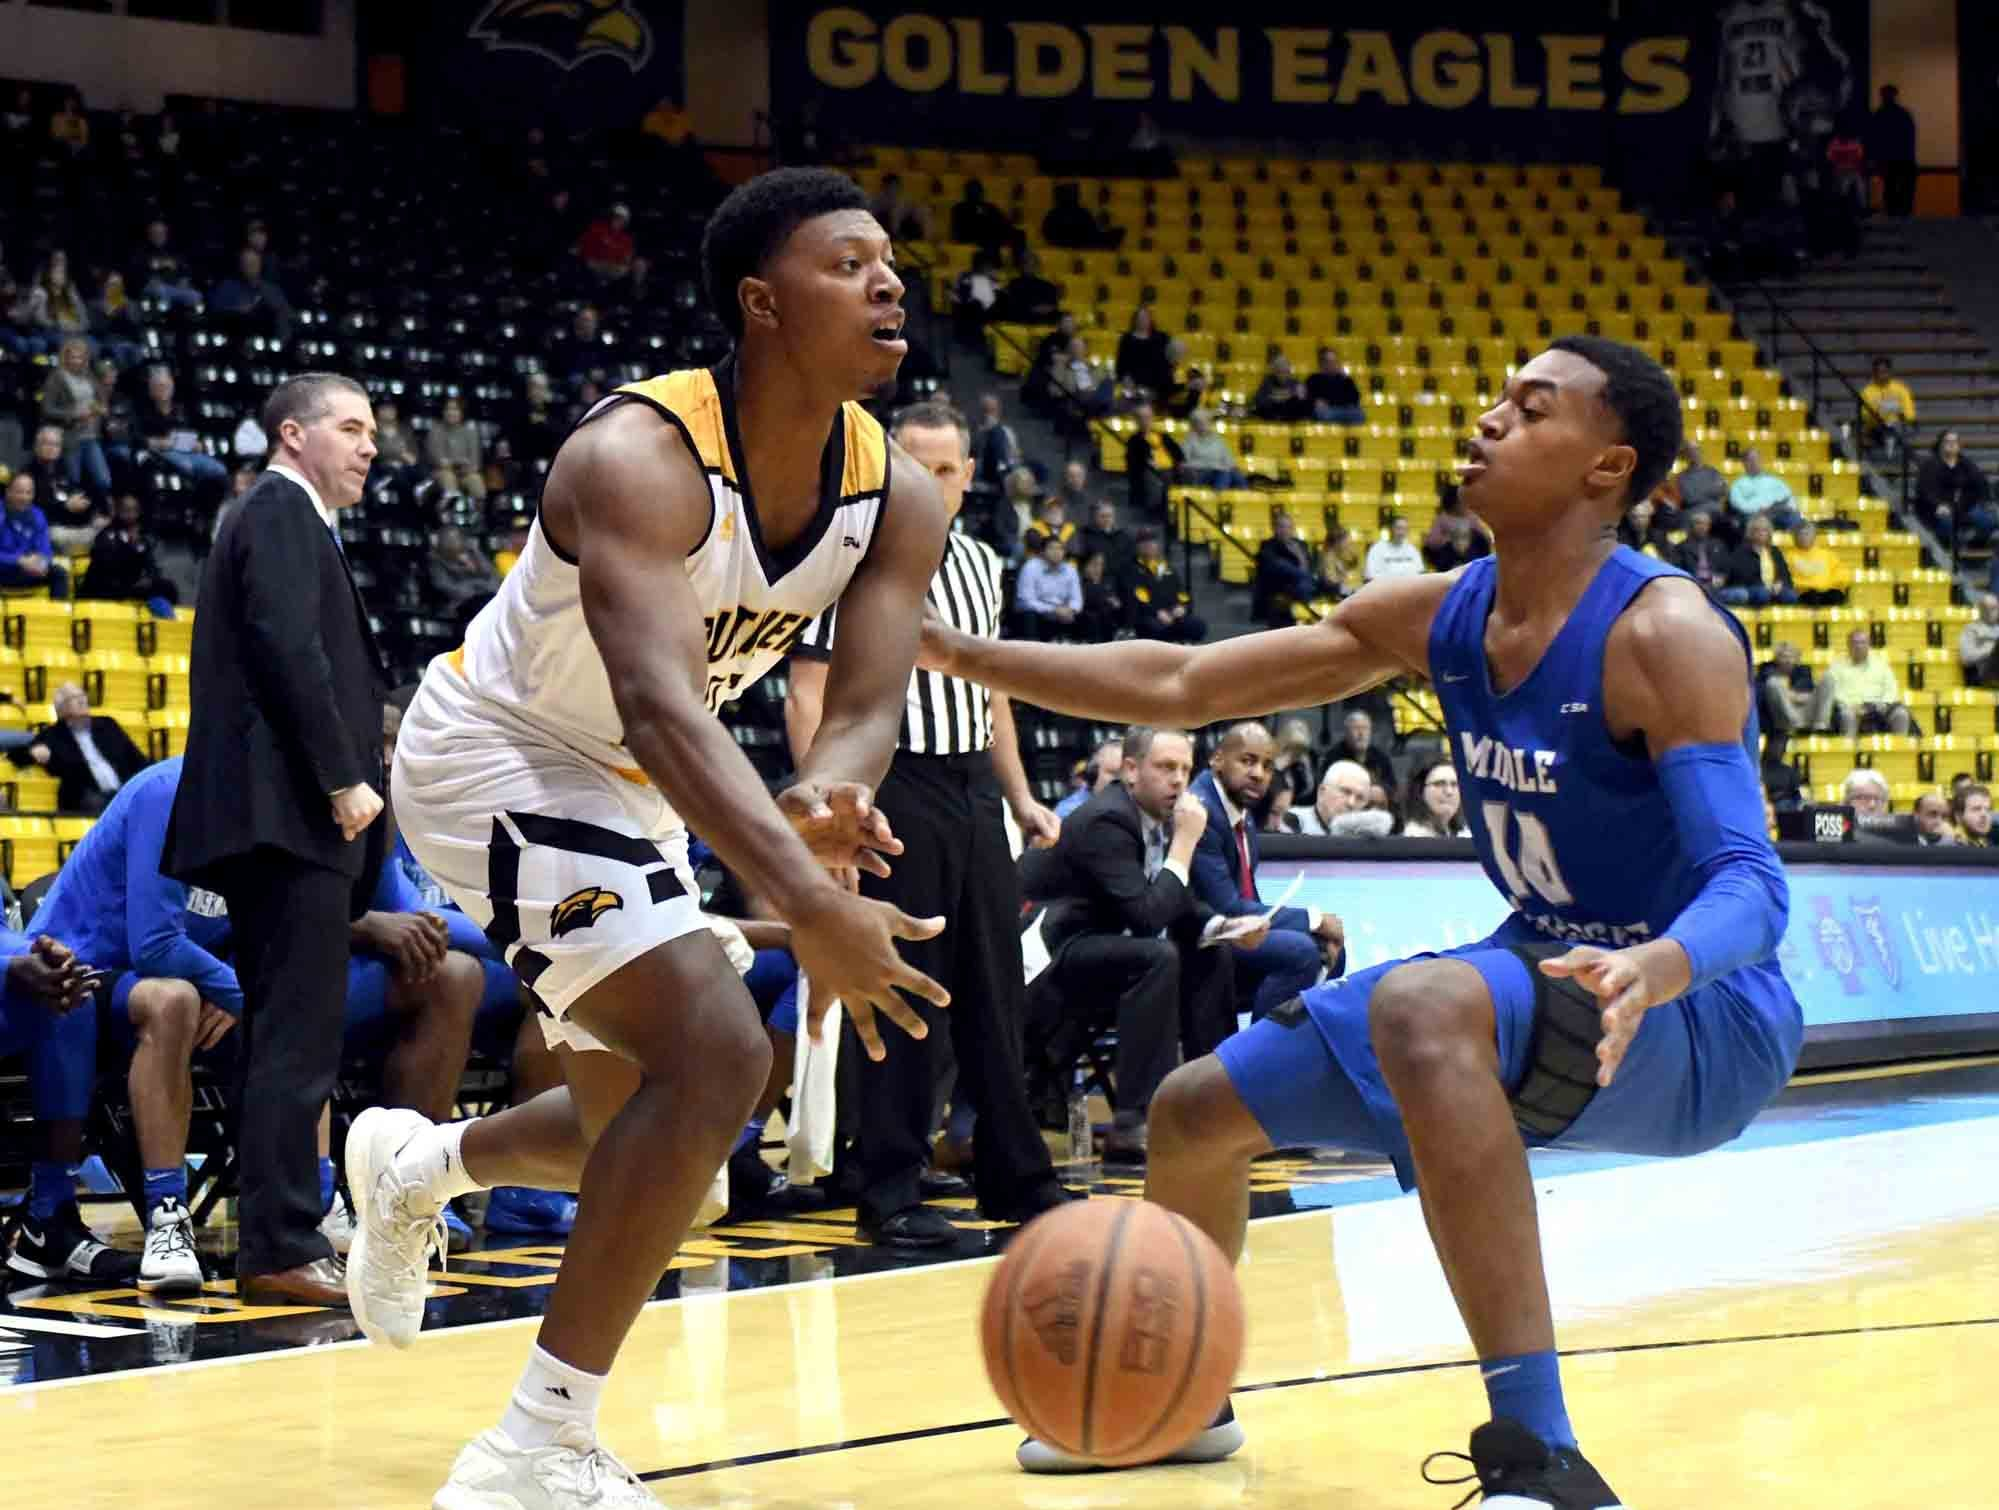 Southern Miss guard Ladavius Draine passes the ball in a  game against Middle Tennessee in Reed Green Coliseum on Thursday, January 10, 2019.